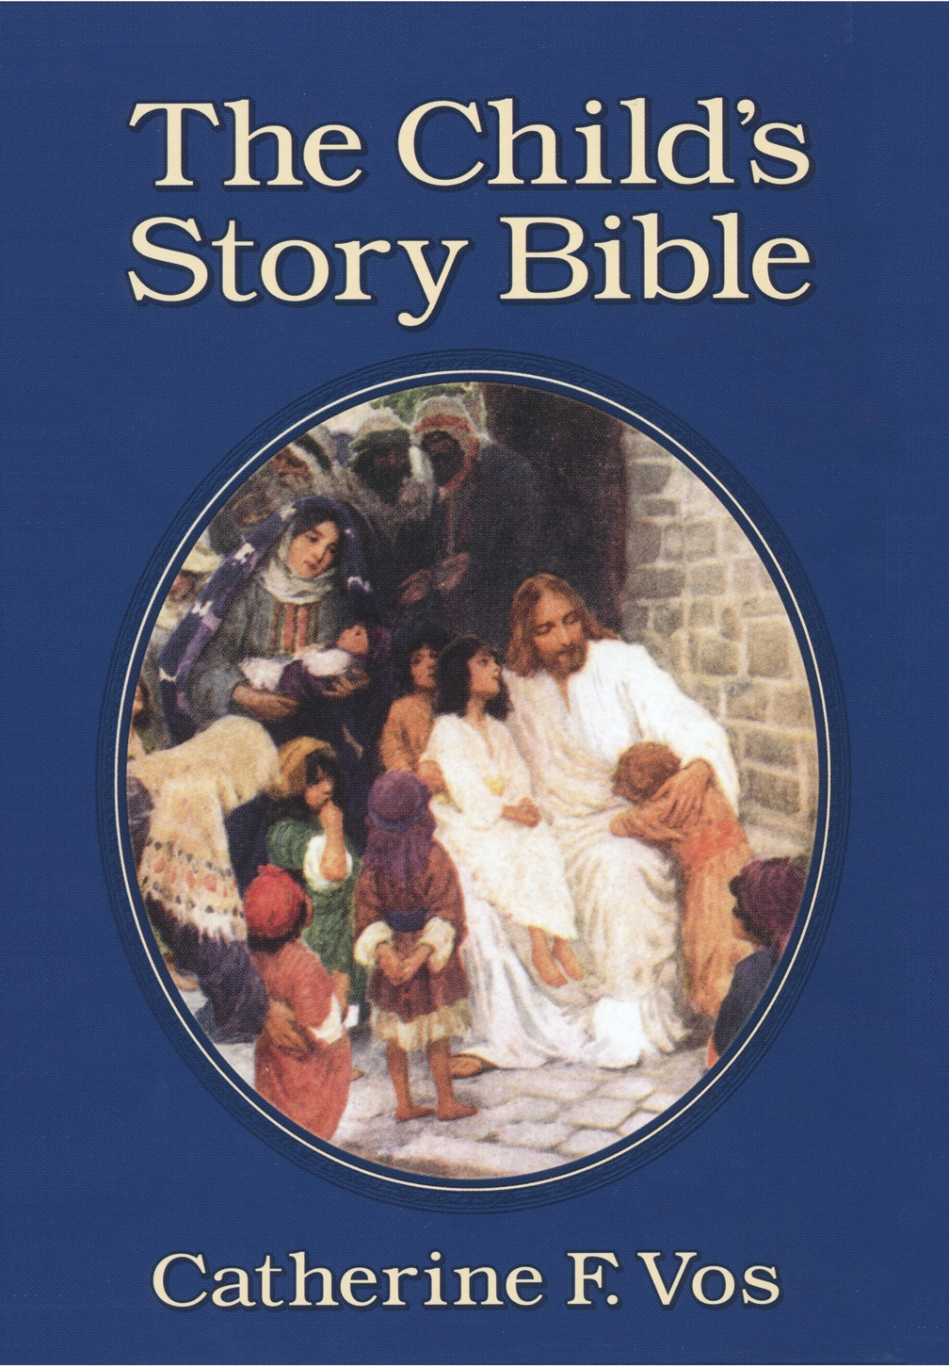 The Child's Story Bible illustrated books for children